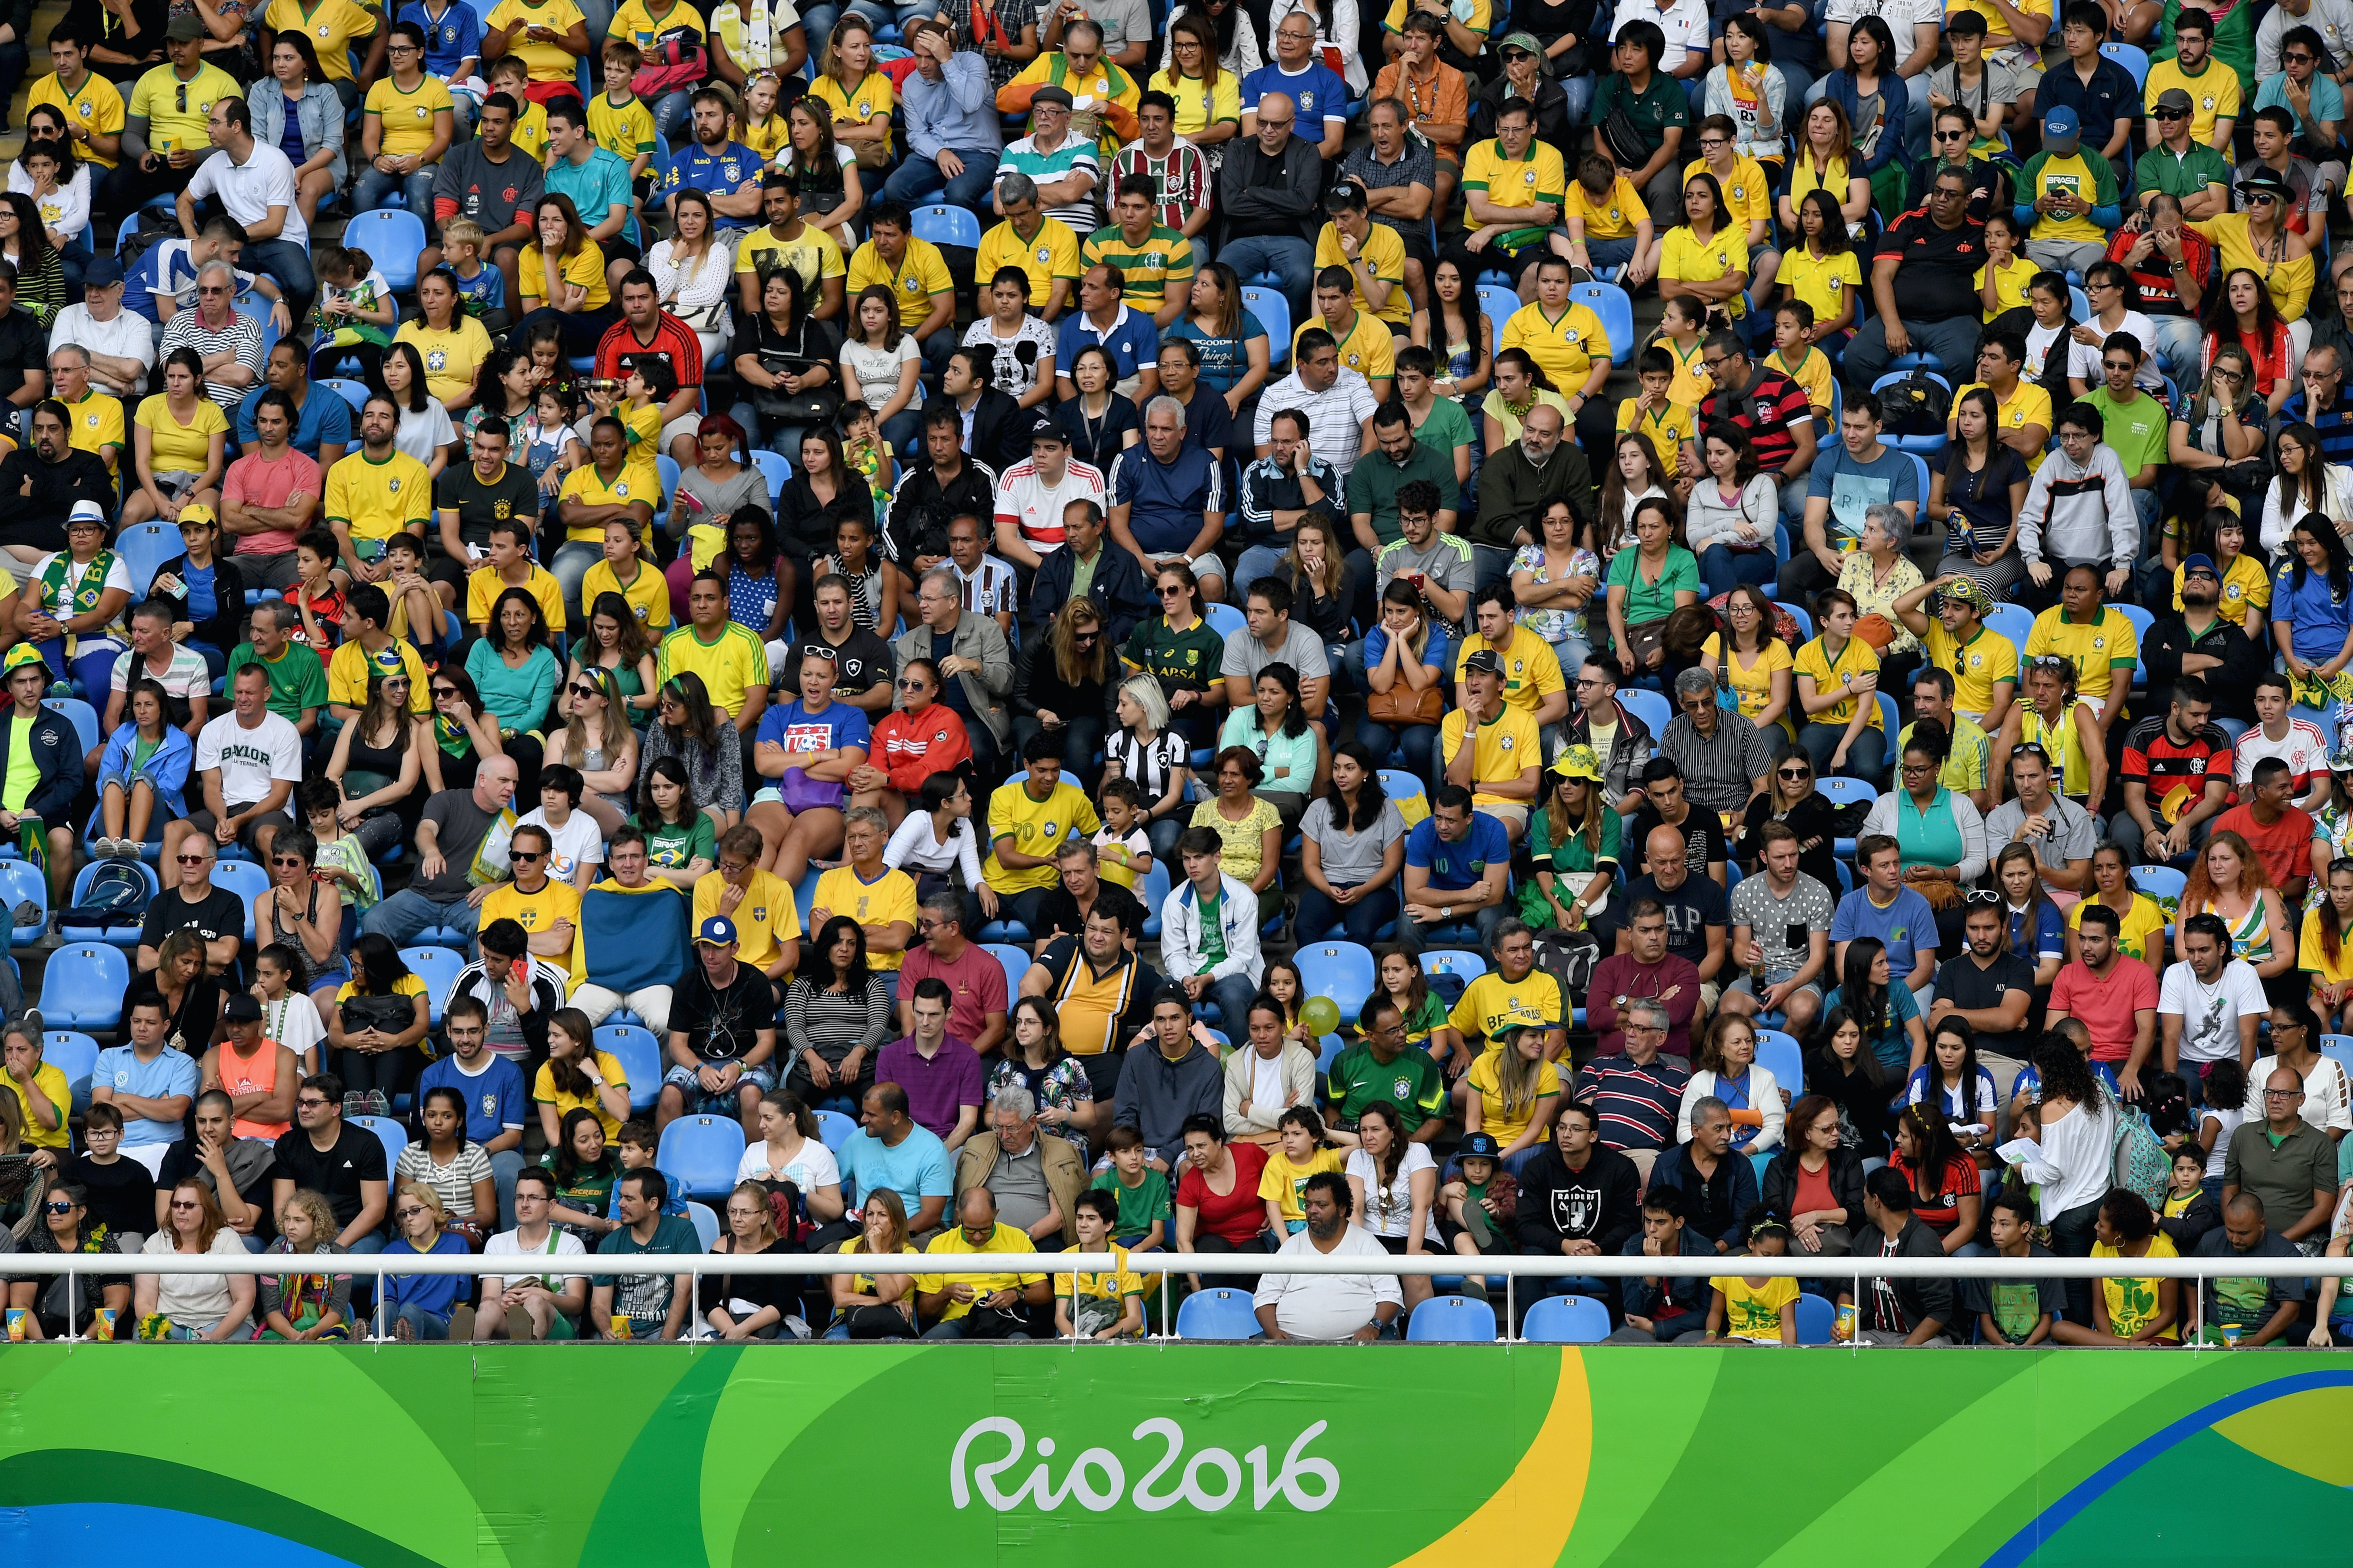 Fans watch the action during the Women's Group E first round match between Brazil and China PR during the Rio 2016 Olympic Games at the Olympic Stadium on August 3, 2016 in Rio de Janeiro, Brazil.